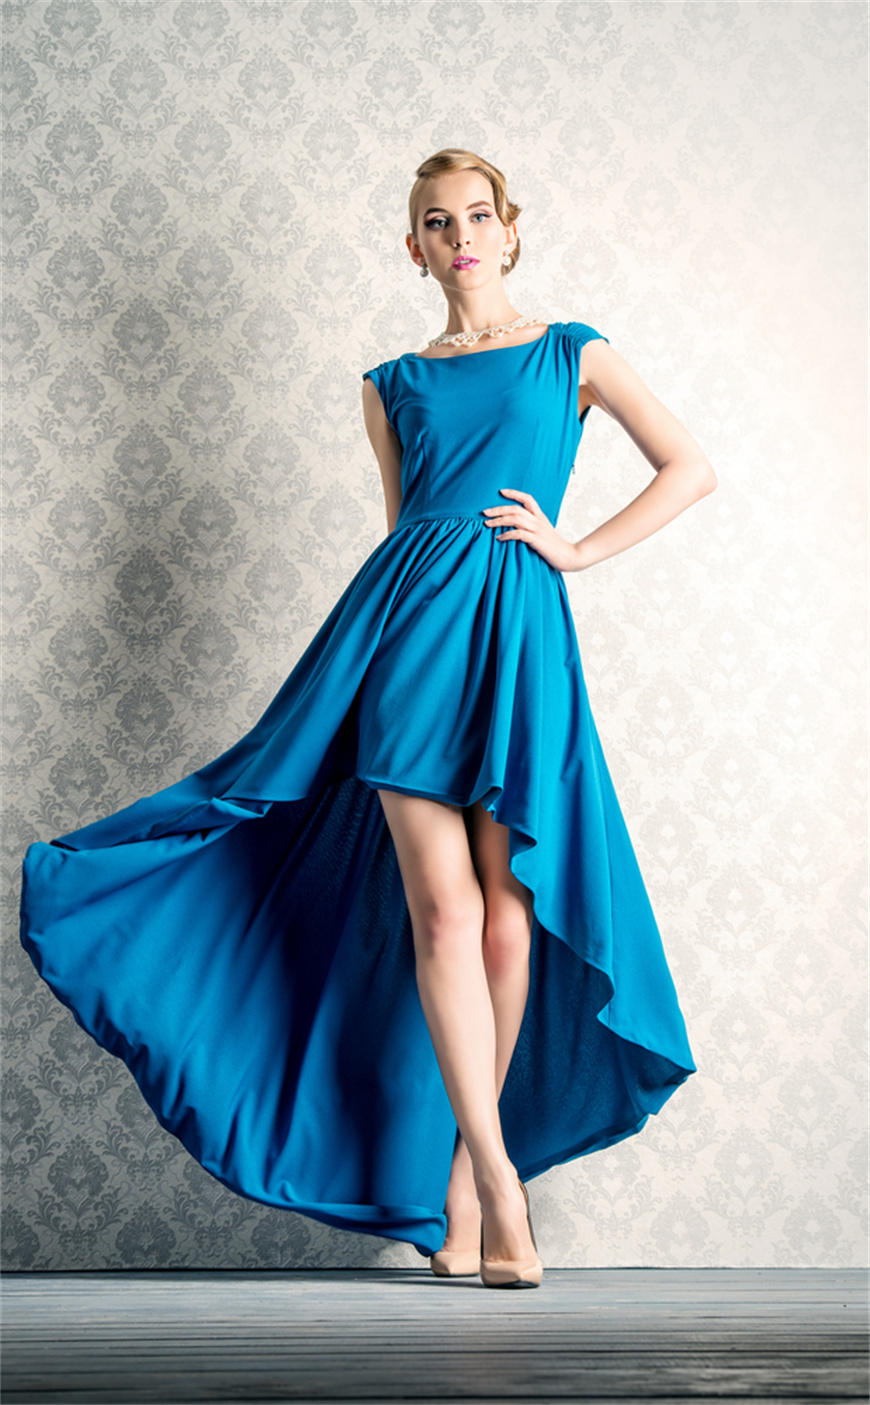 shoes-of-evening-dress